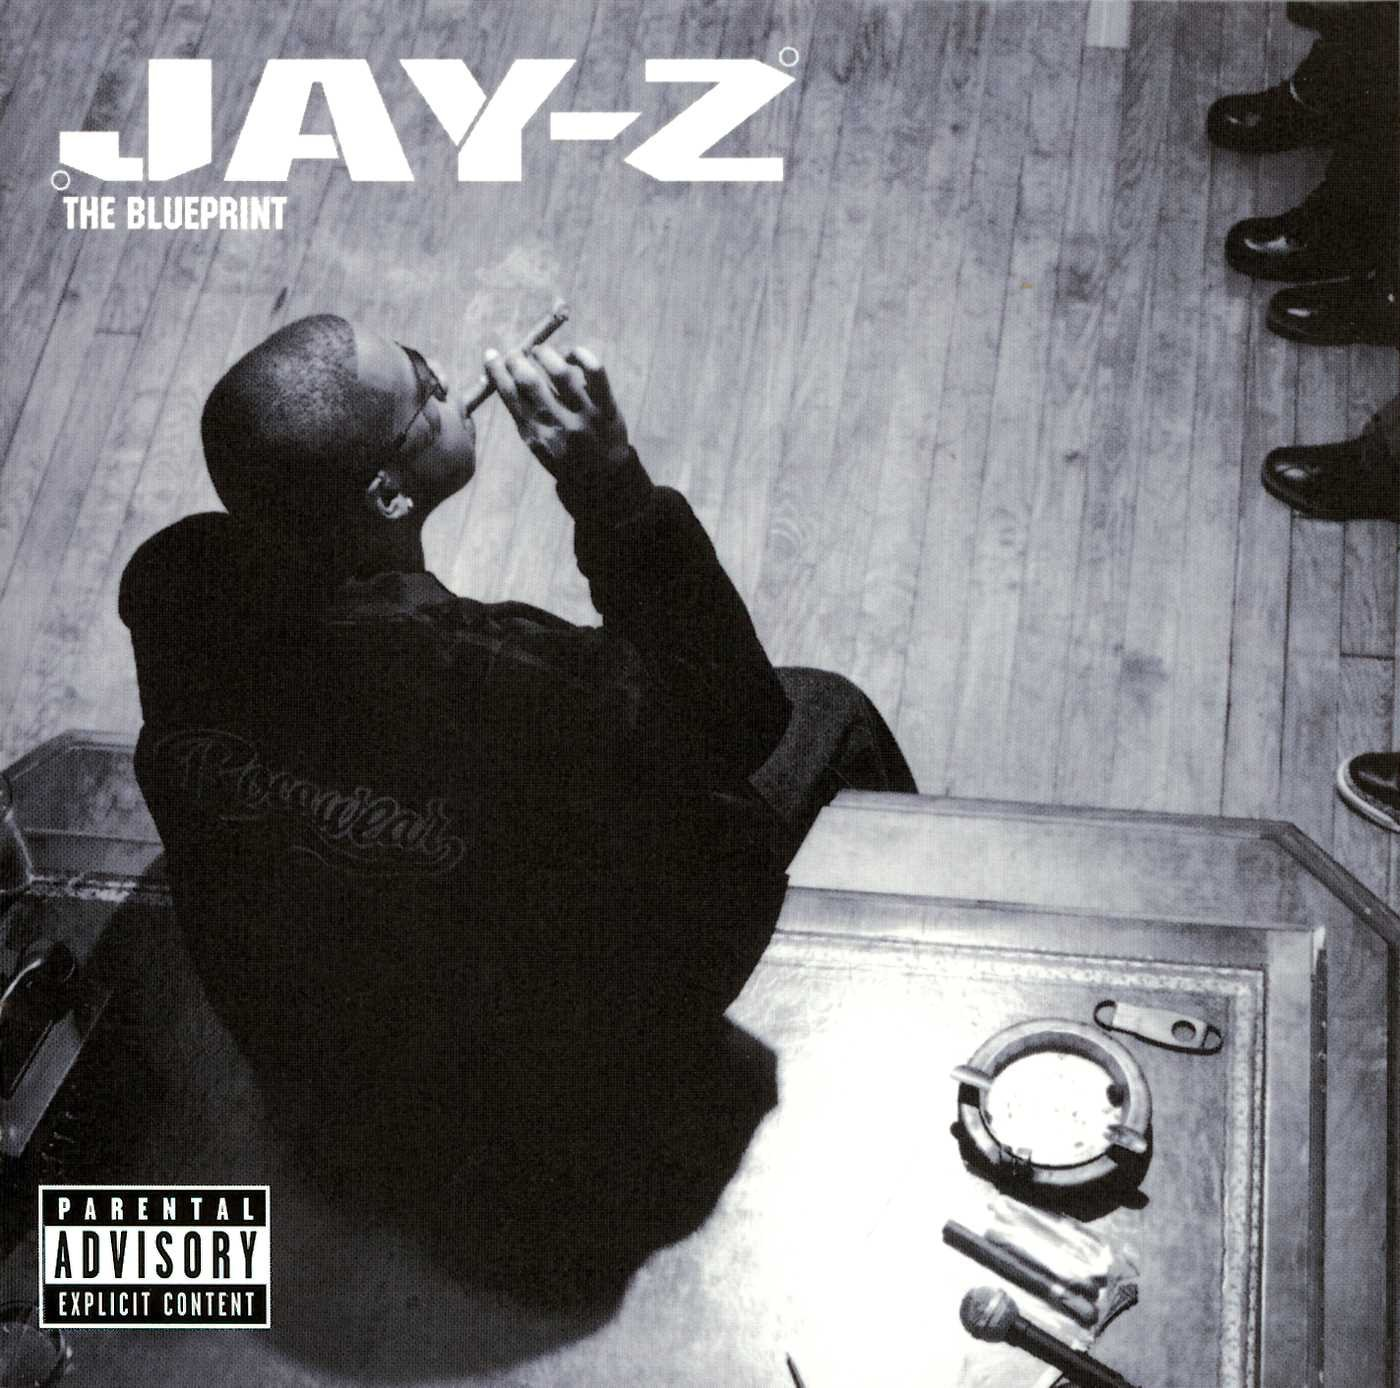 Today in Hip-Hop History: Jay-Z Drops His Landmark 'The Blueprint' Album 18 Years Ago